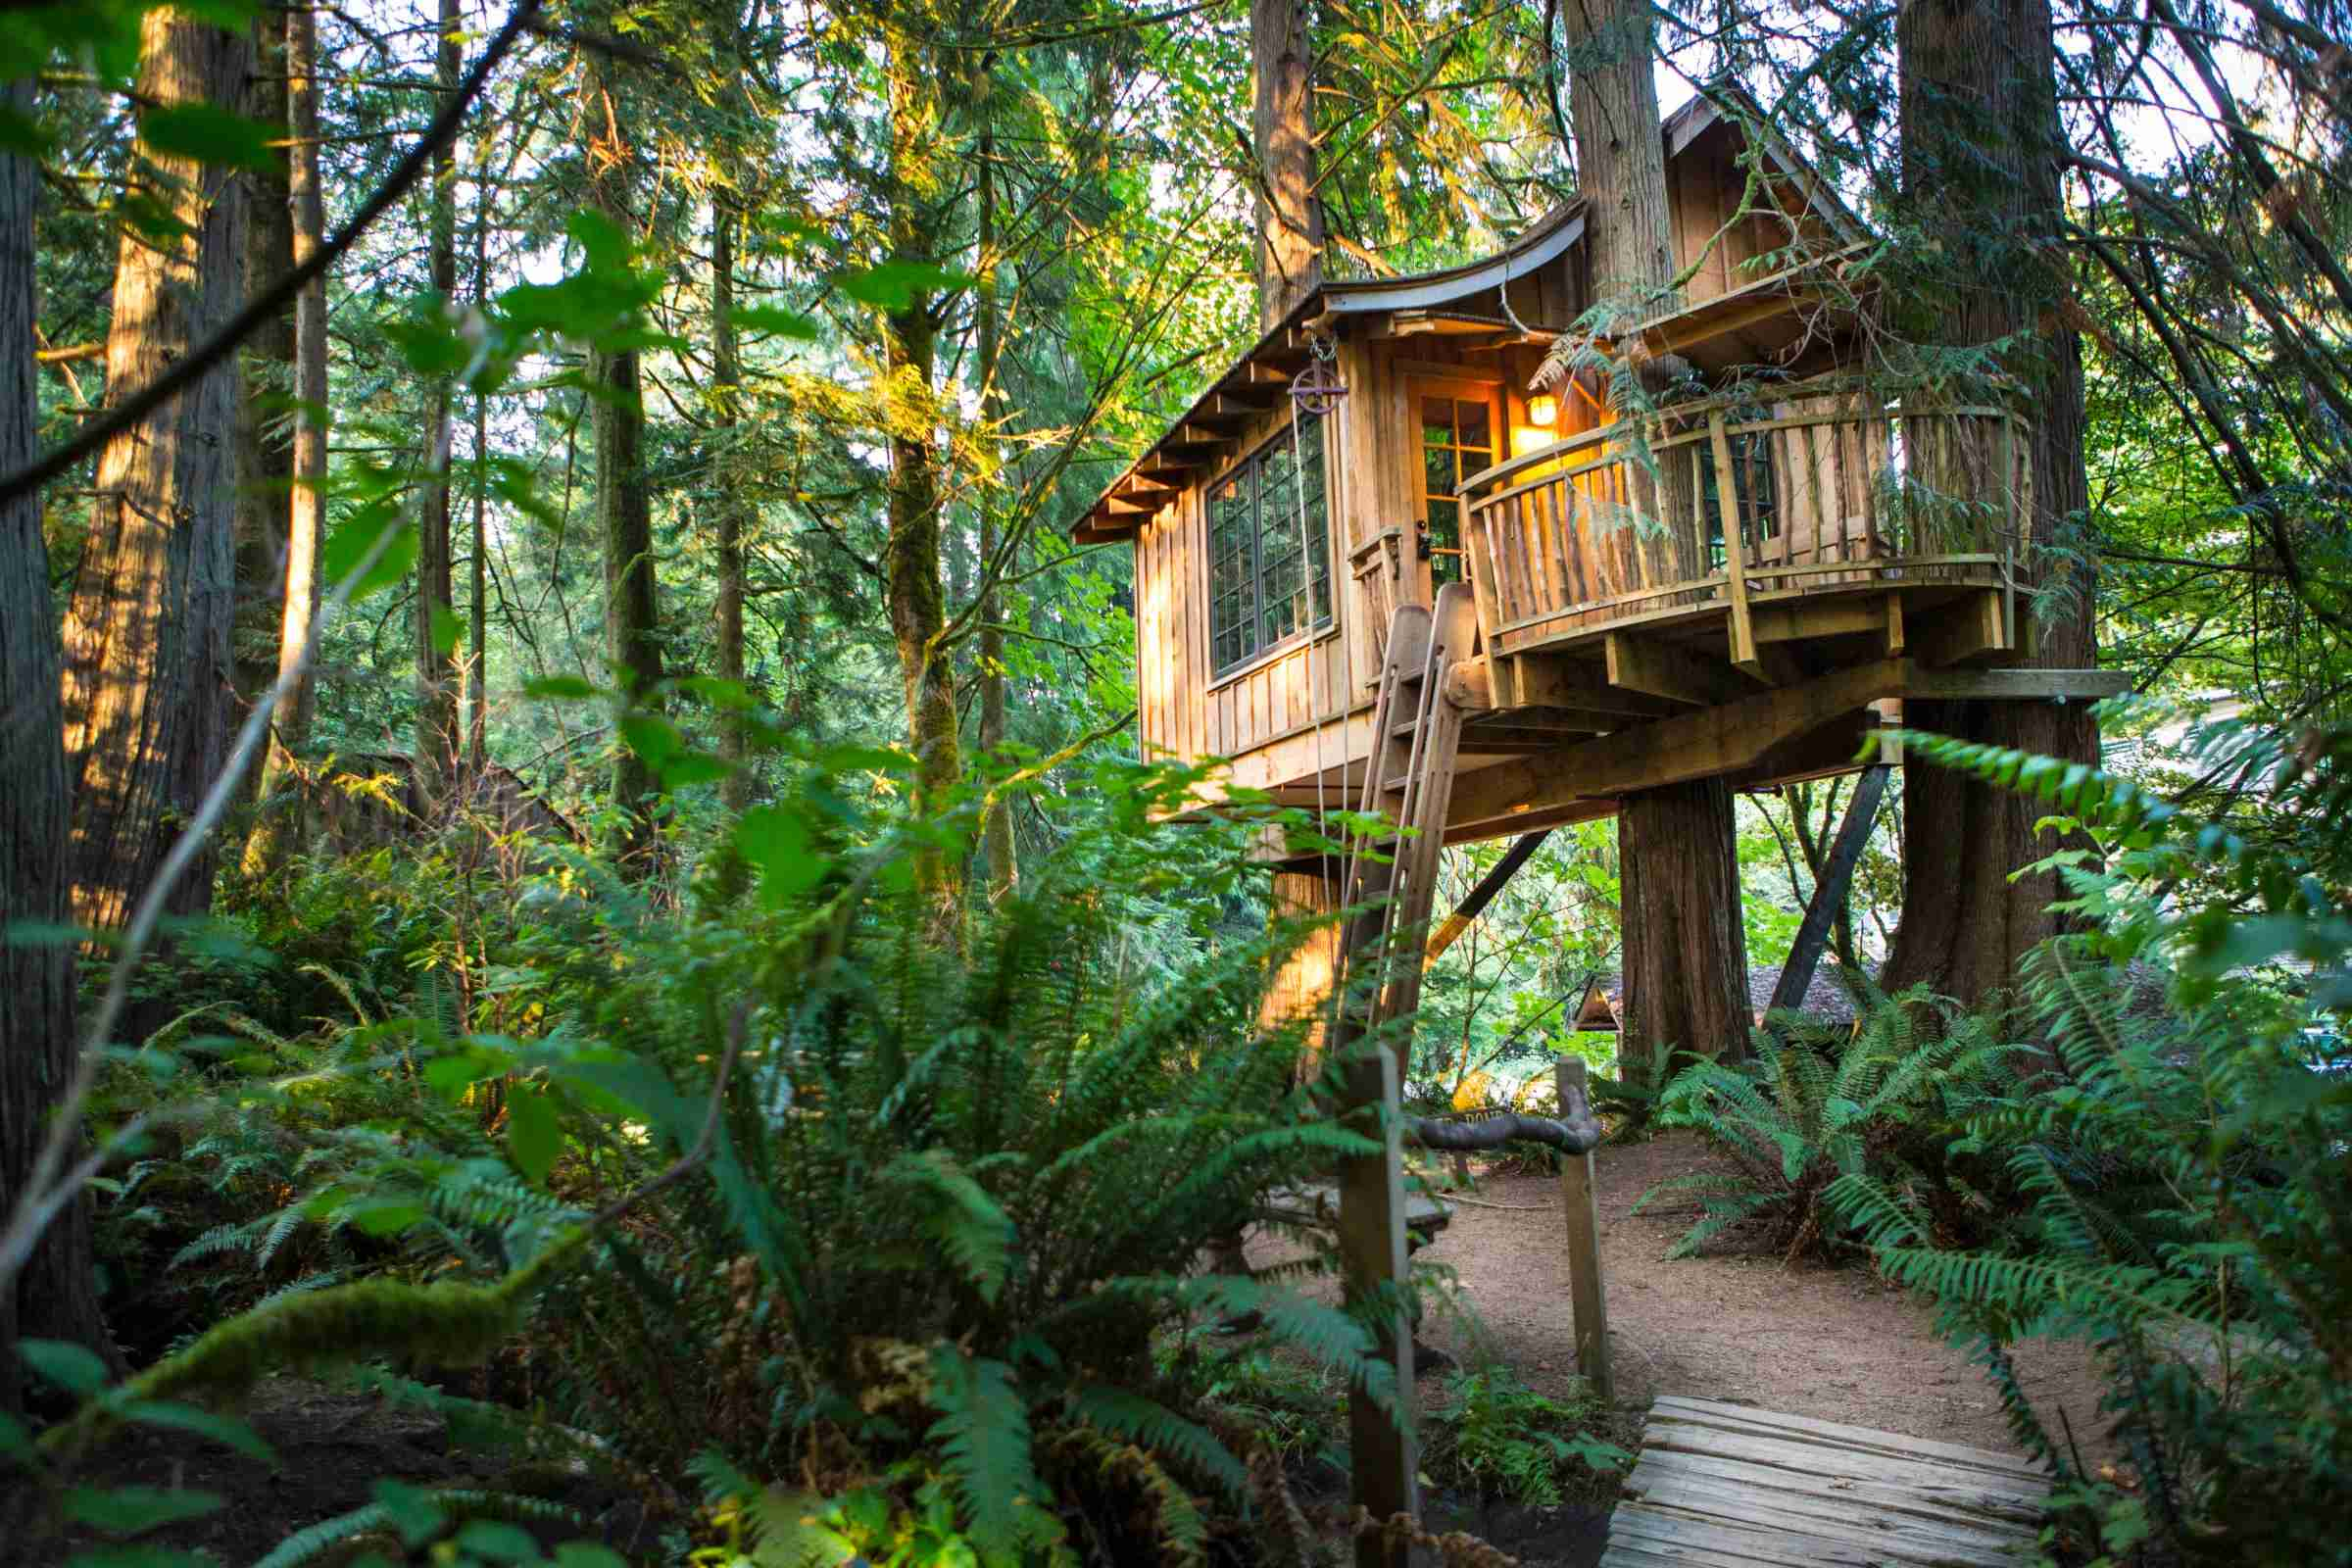 The tree house- Upper Pond is beautifully situated among the trees. Photo courtesy of Adam Crowley.